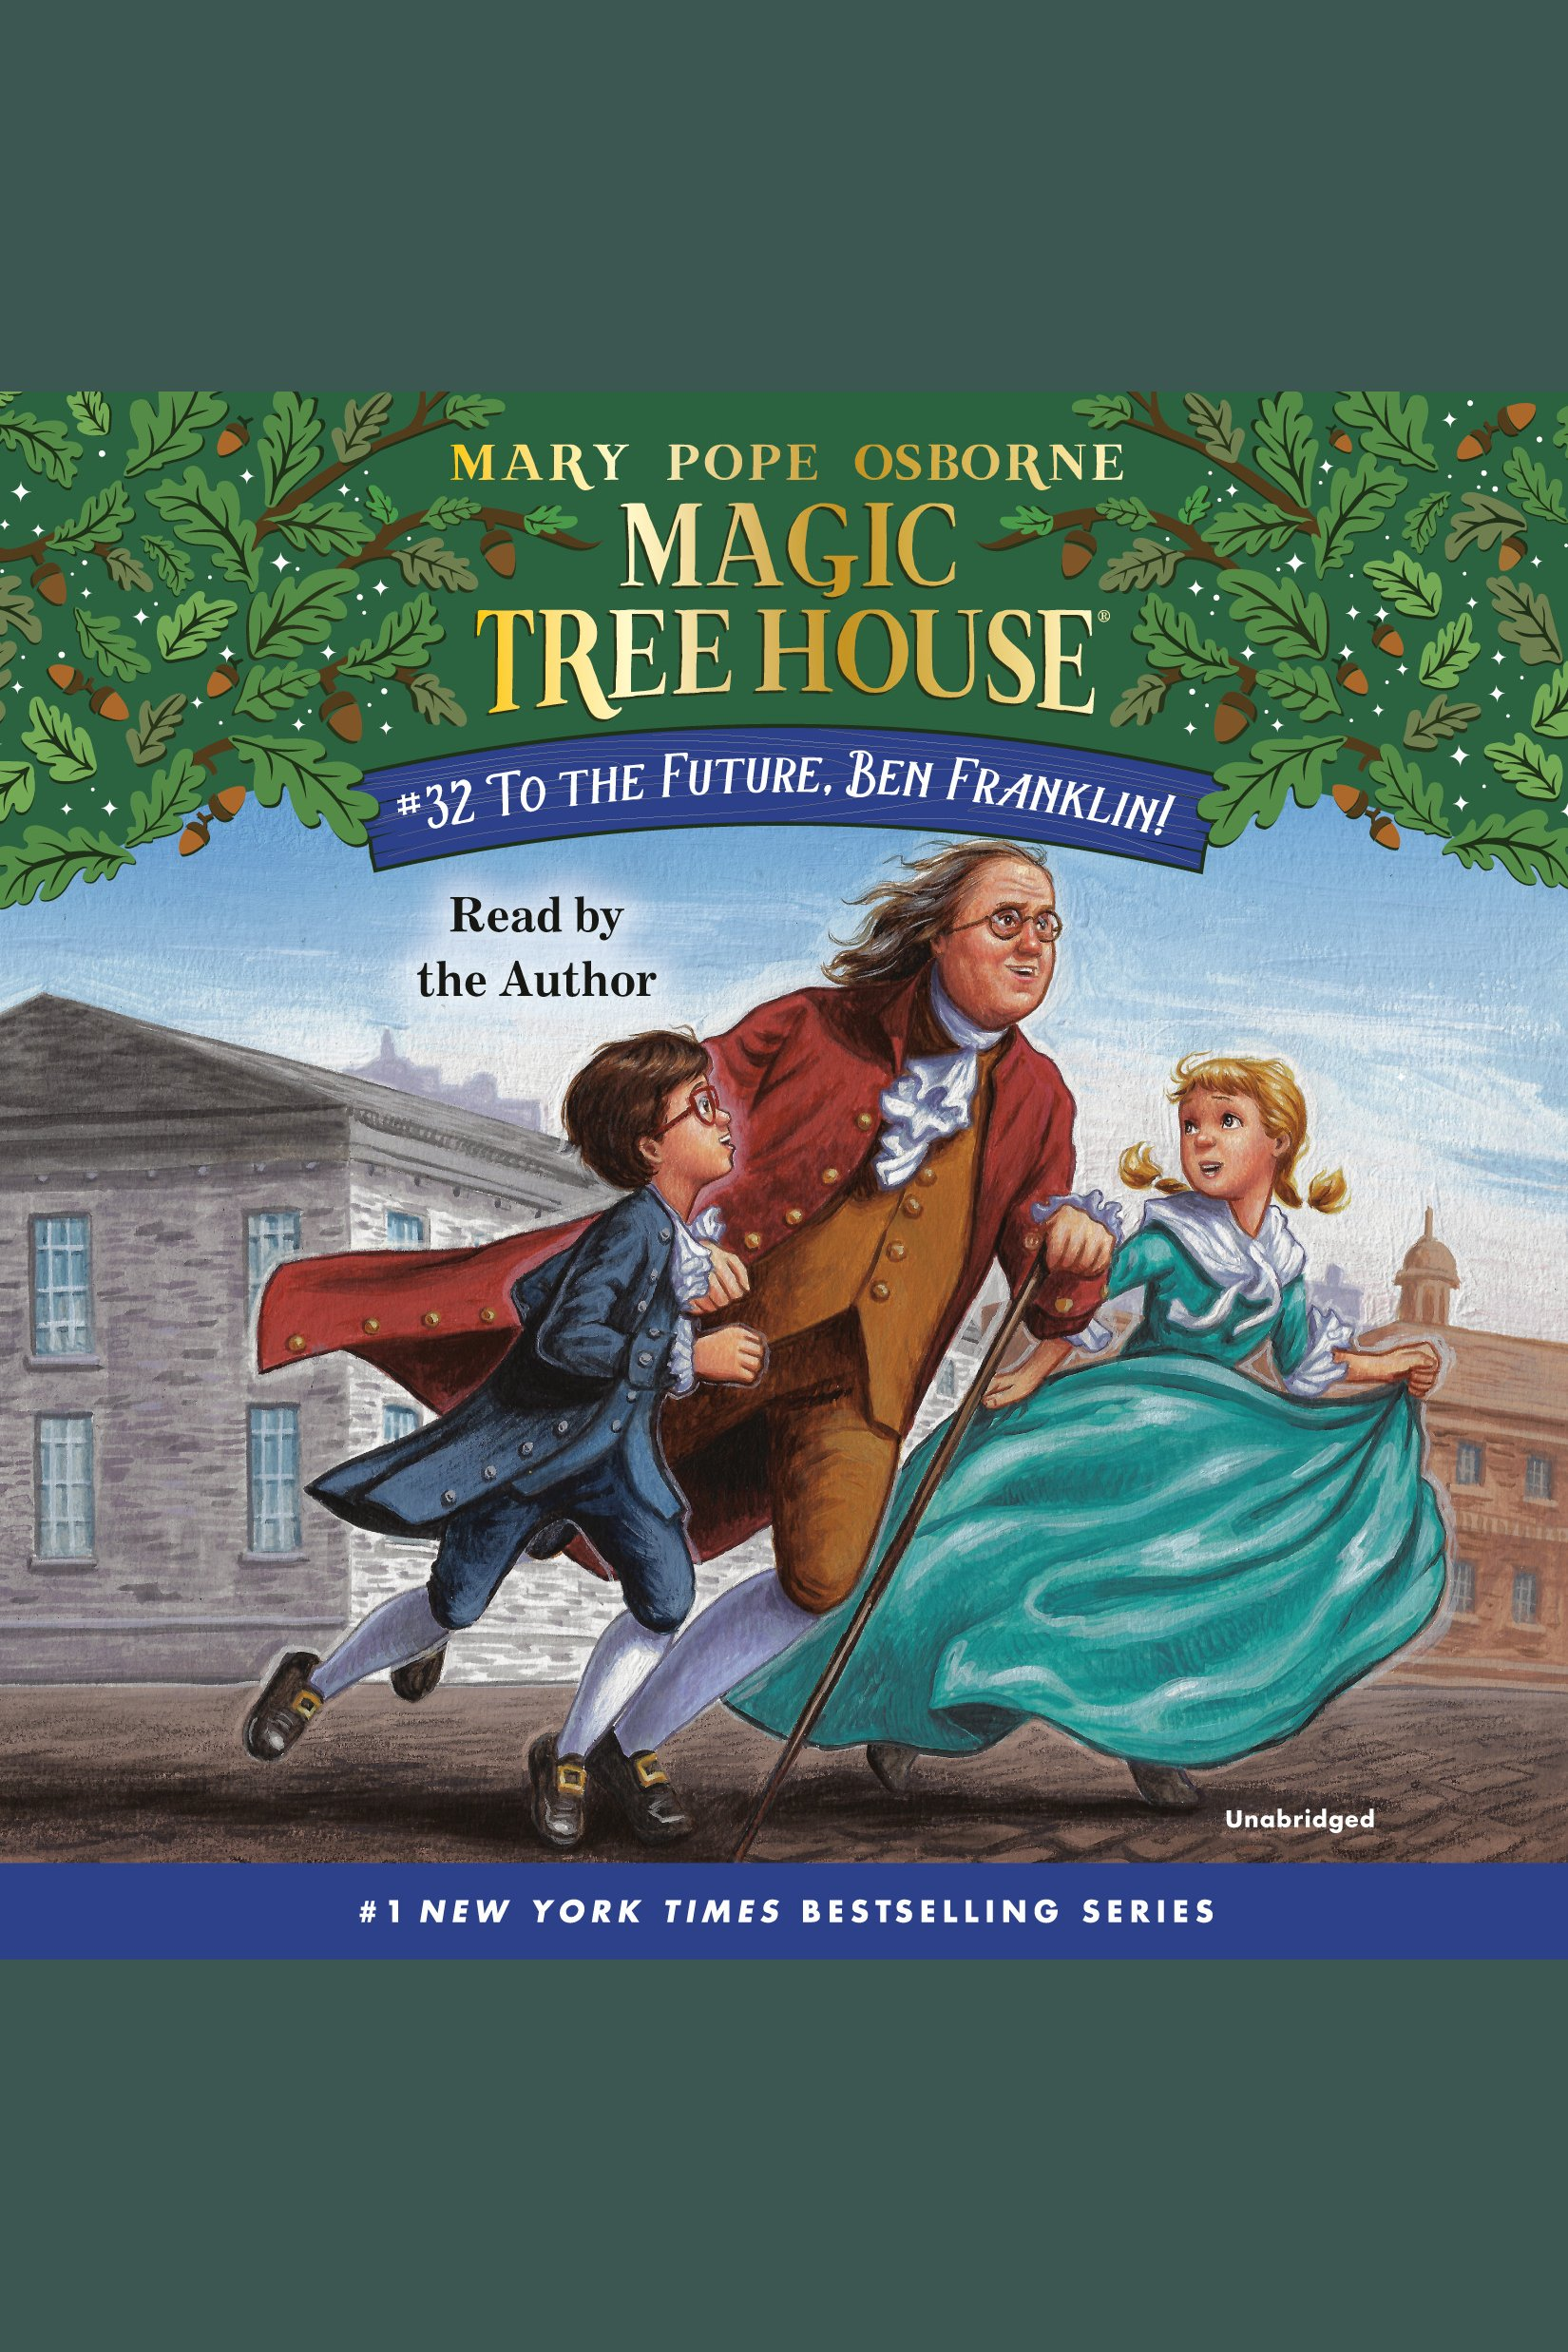 Magic Tree House, Book 32 To the Future, Ben Franklin!